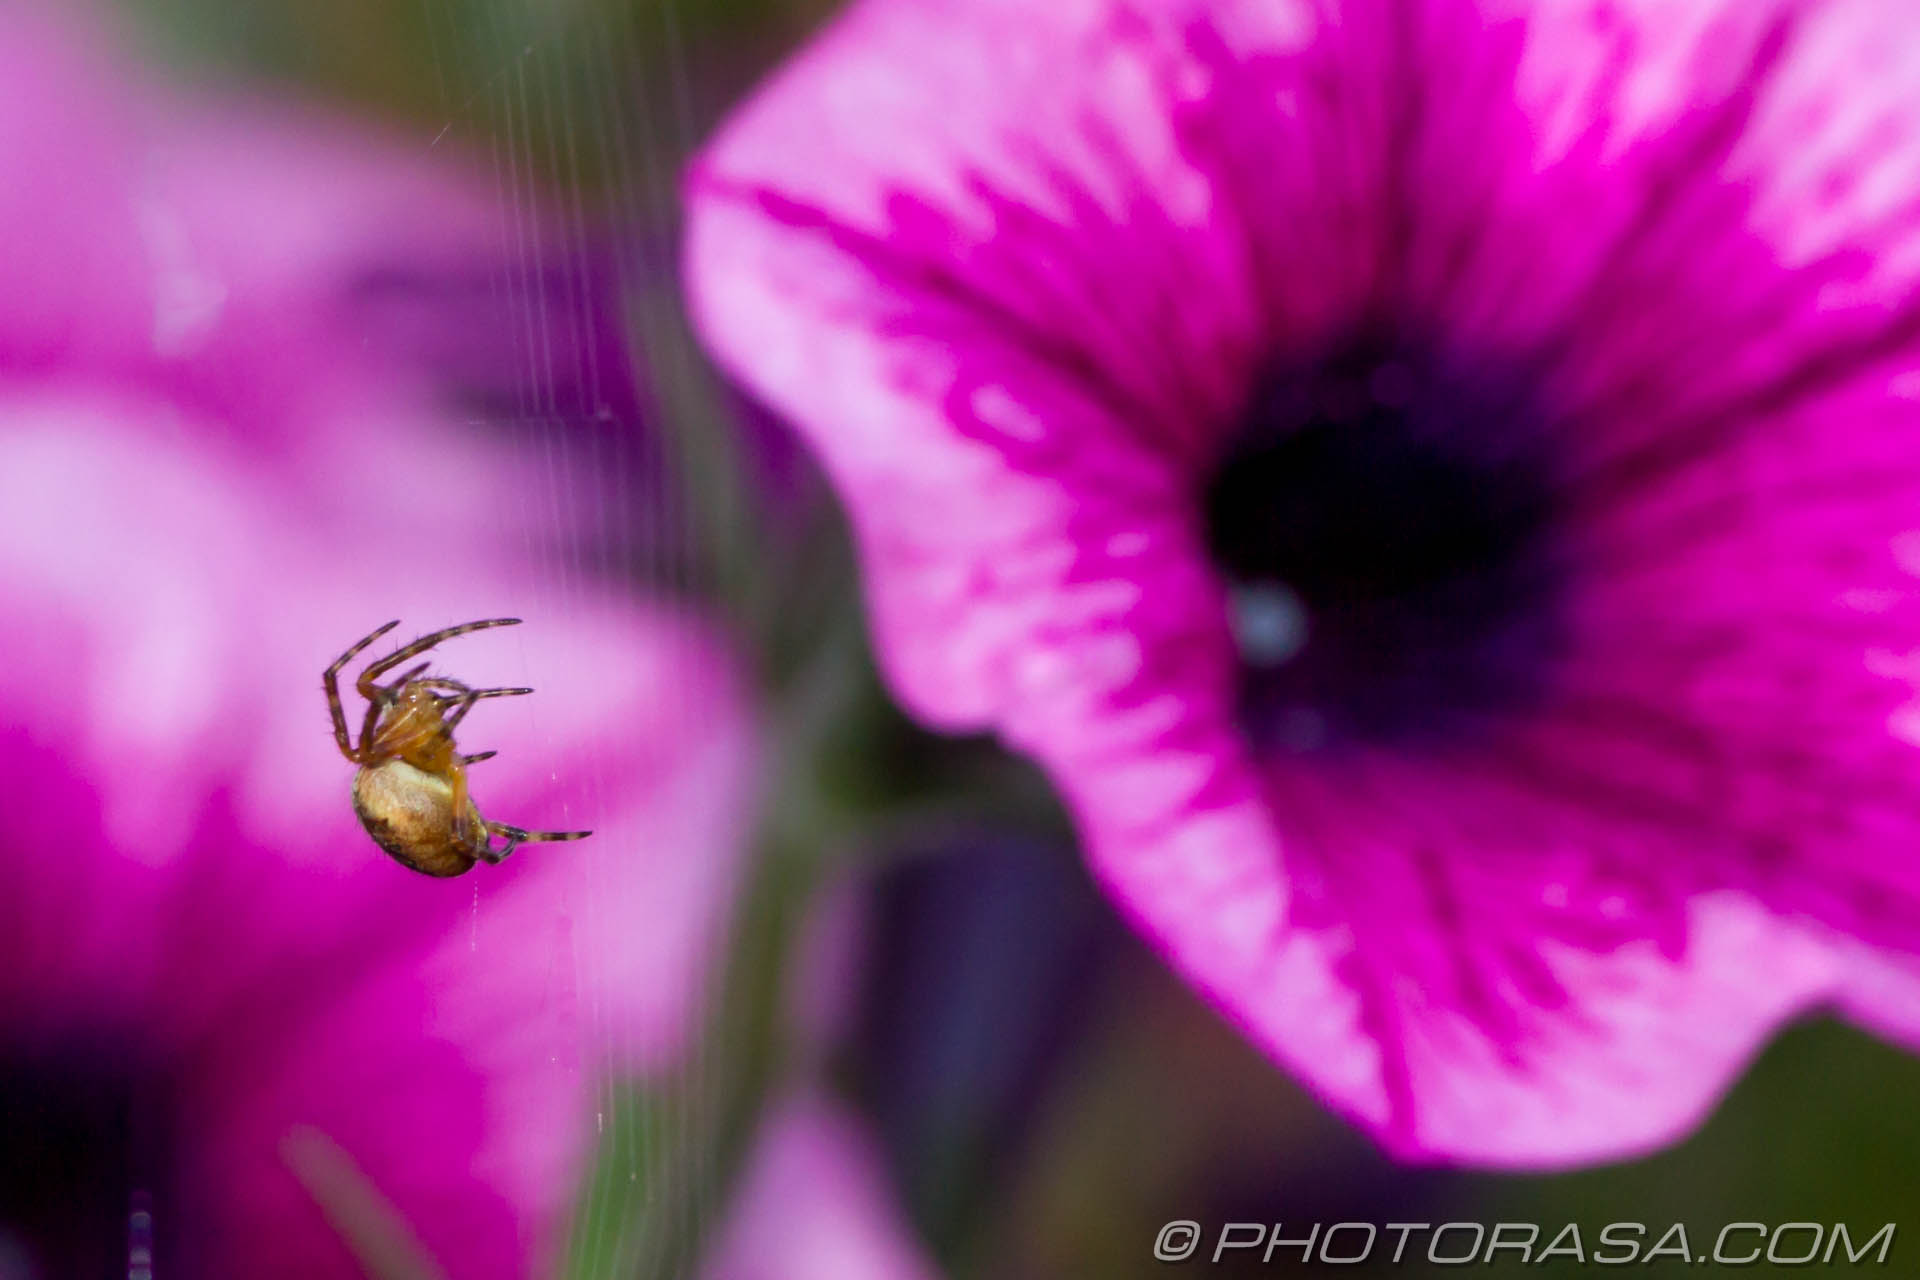 https://photorasa.com/spider-petunias/waiting-for-lunch/